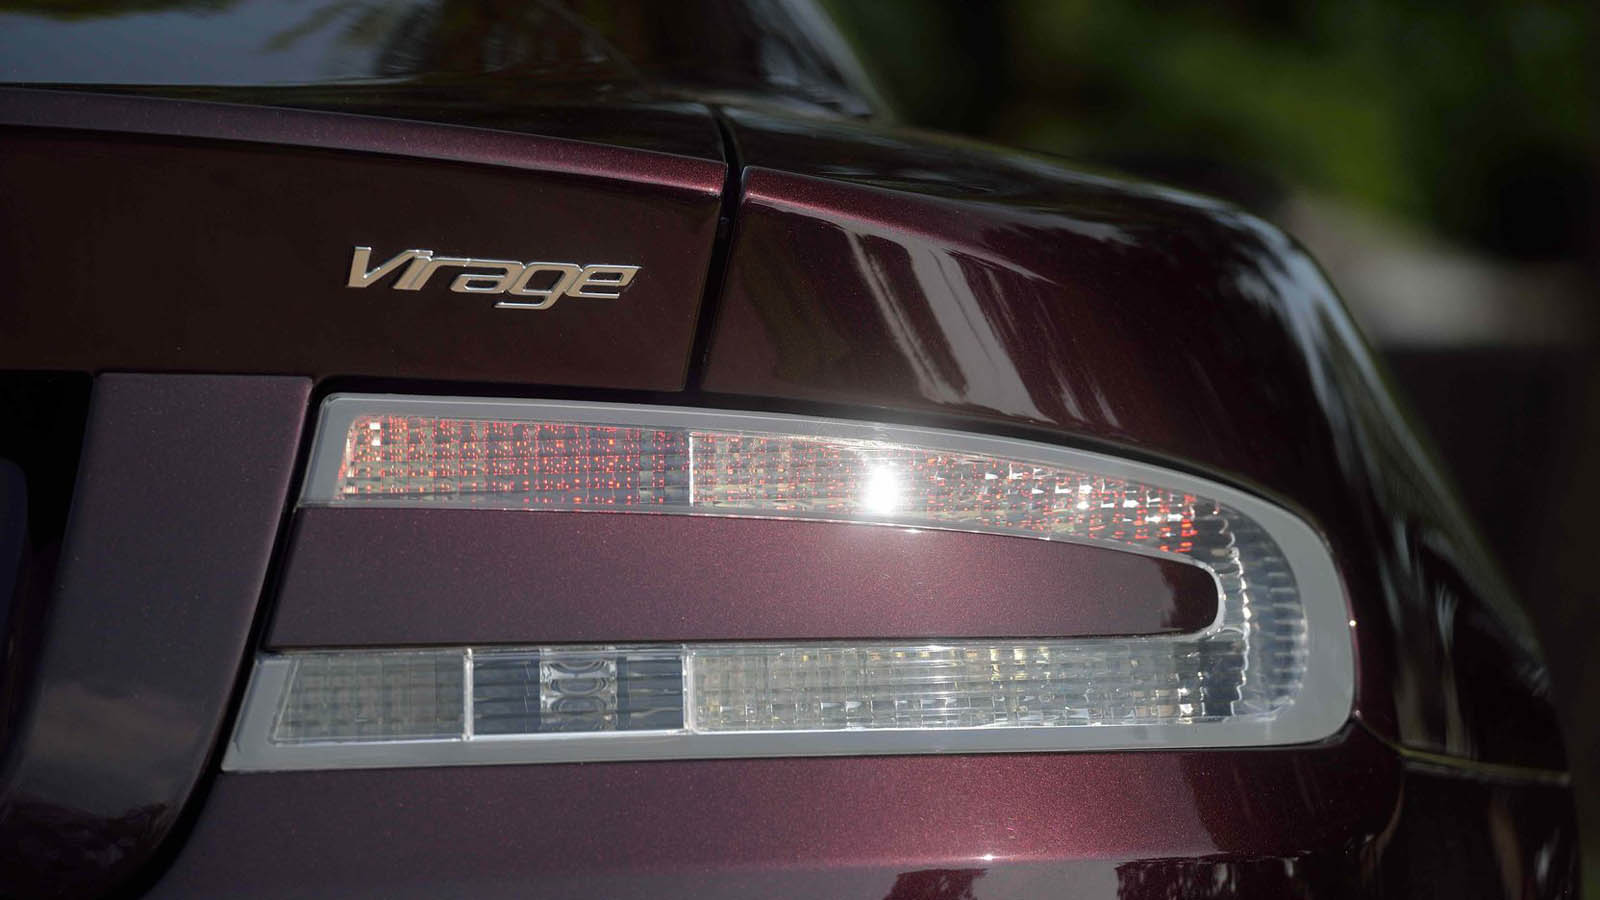 Aston_Martin_Virage_Dragon_88_Edition_12